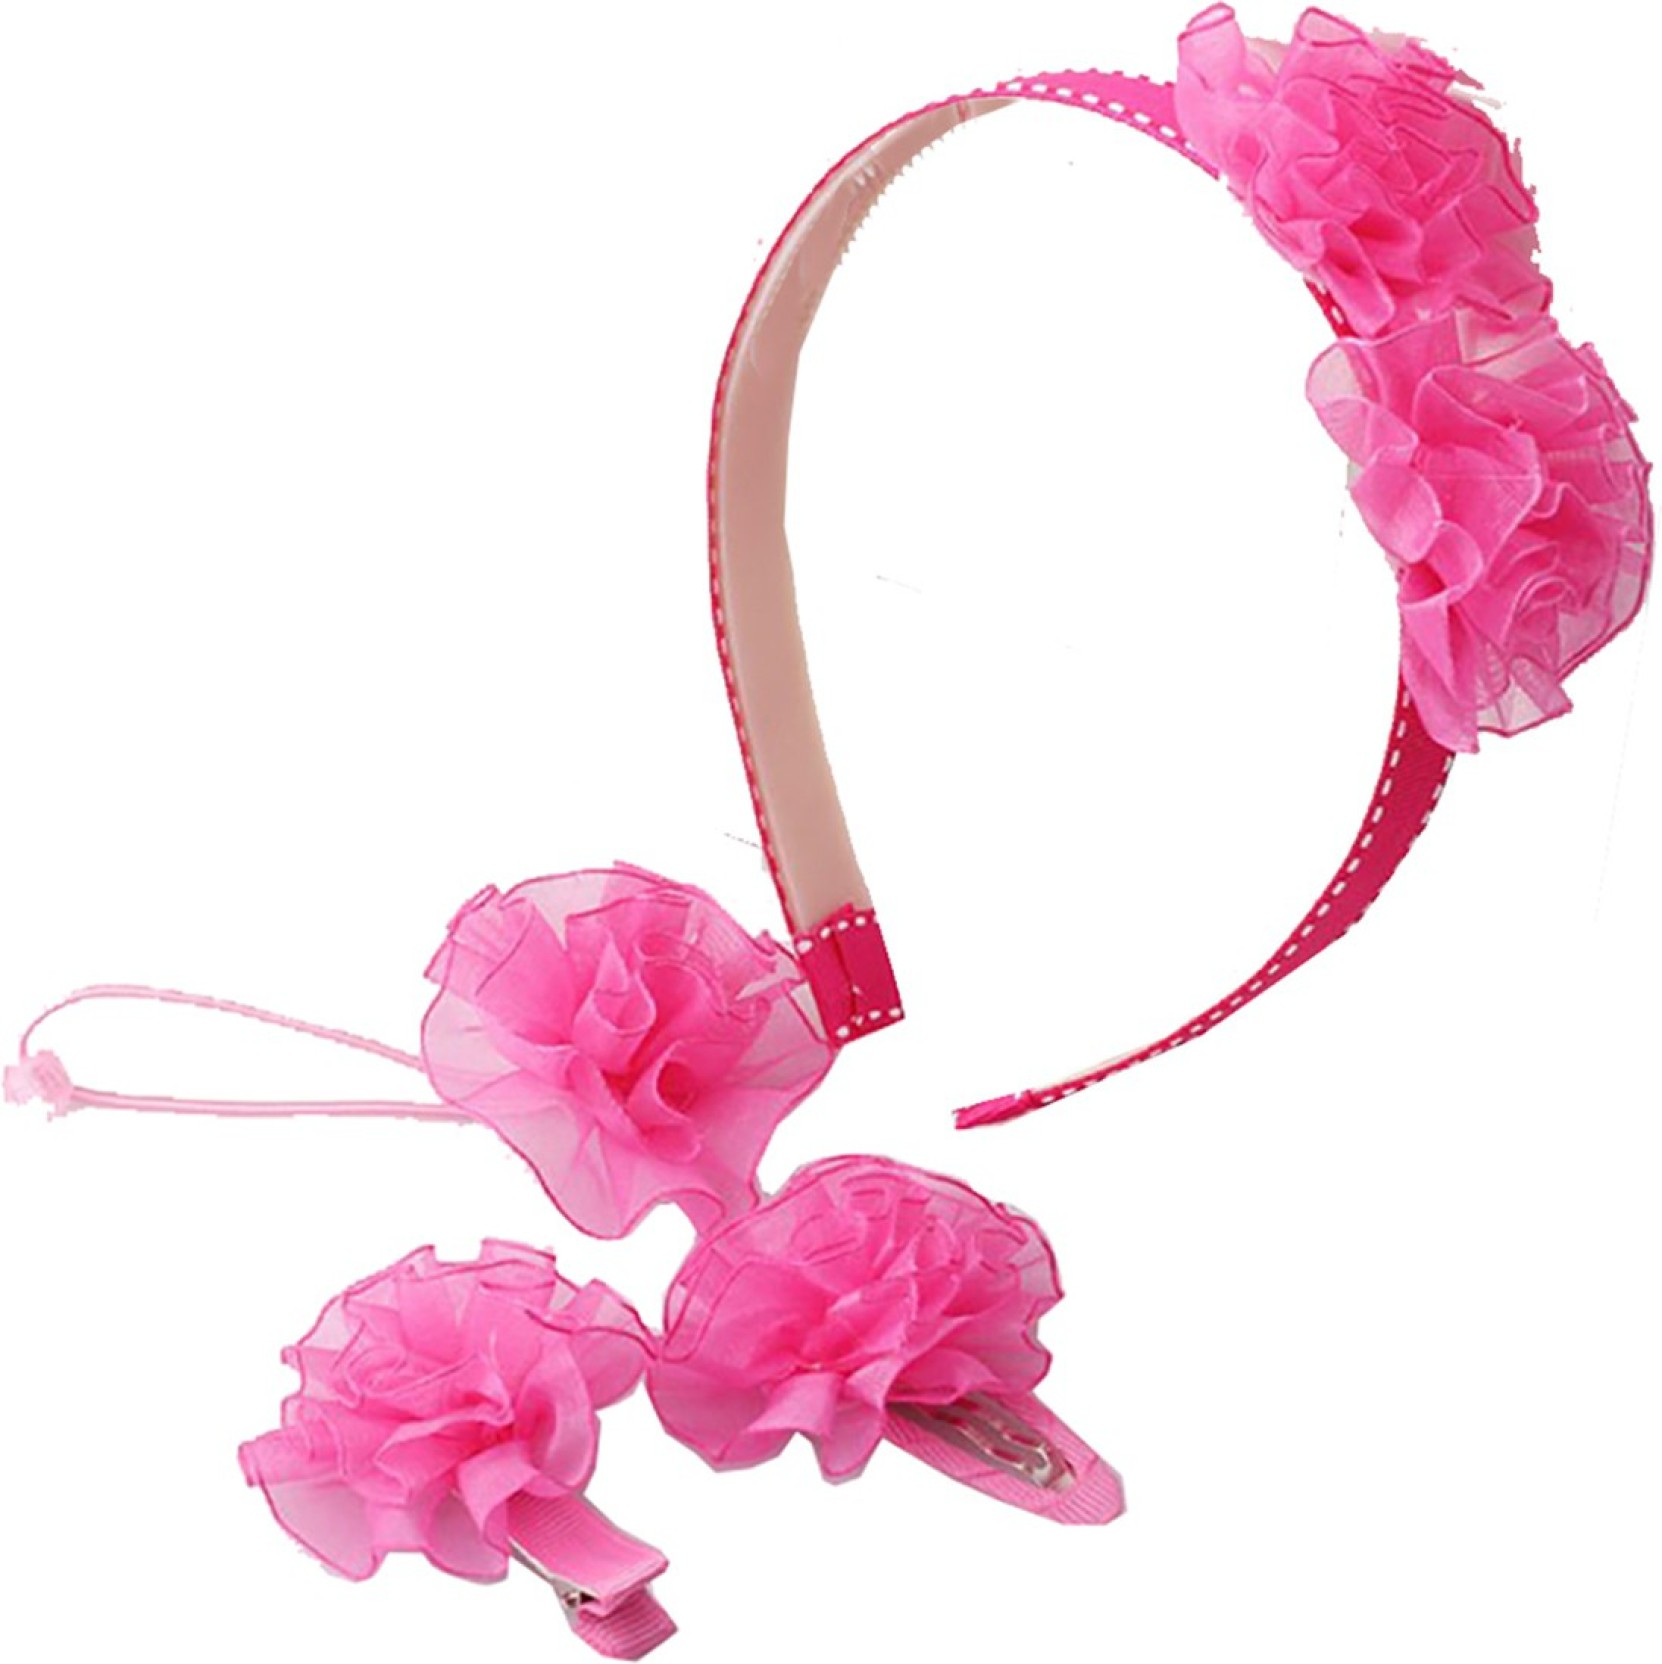 ZIory Pink 4Pcs Set Flower Hairpins Hair Accessories Set Scrunchy Clips  Elastic Hair bands Headband for Girls Kids Hair Band for baby Girls Hair  Band d5487cce11a